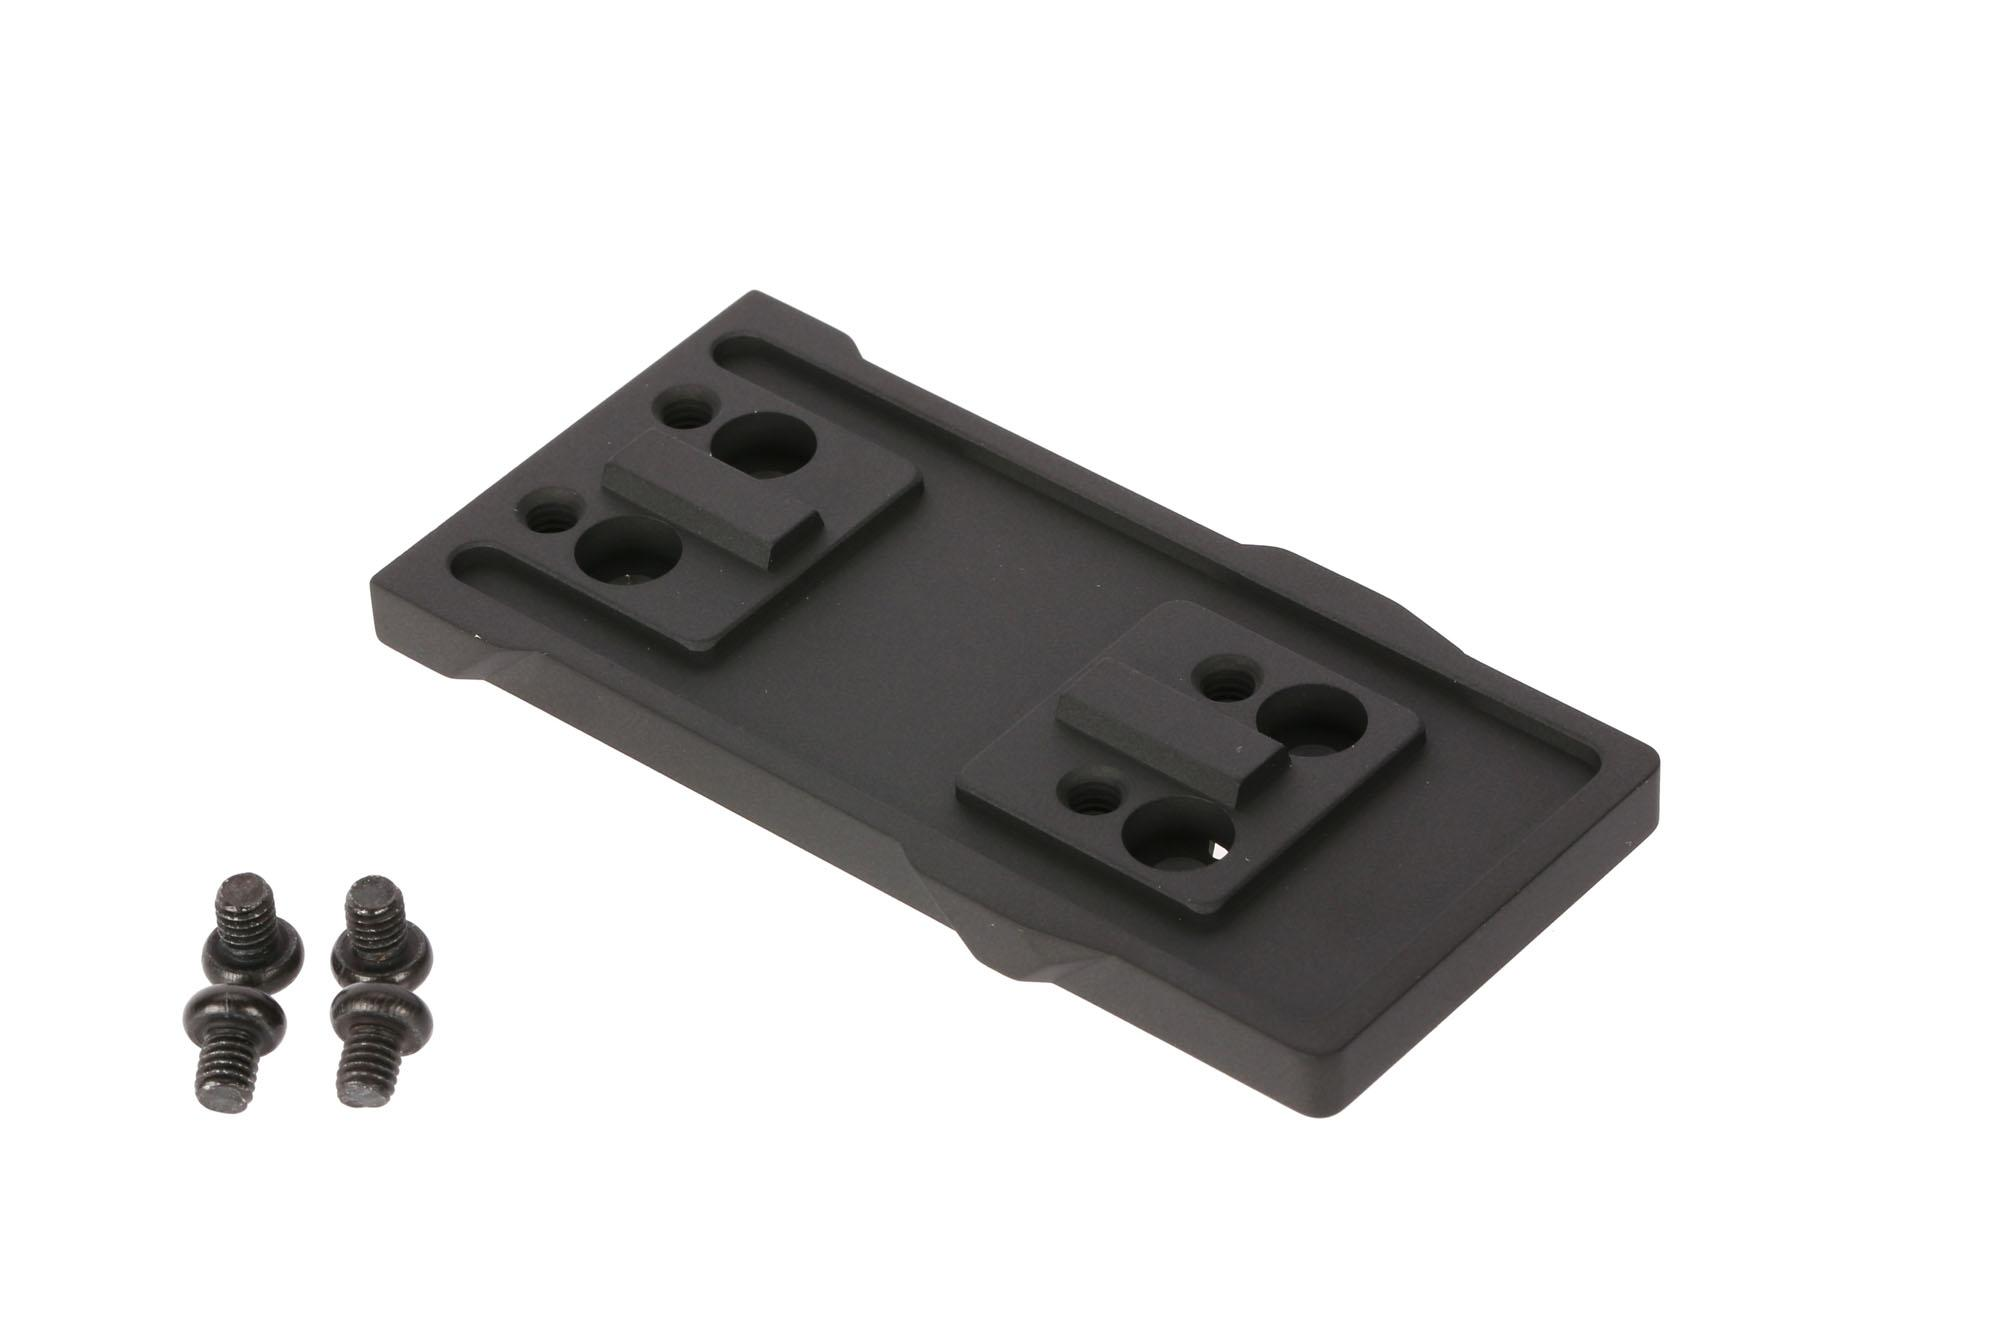 Holosun Red Dot Riser Plate for HS510C Red Dots with hardware